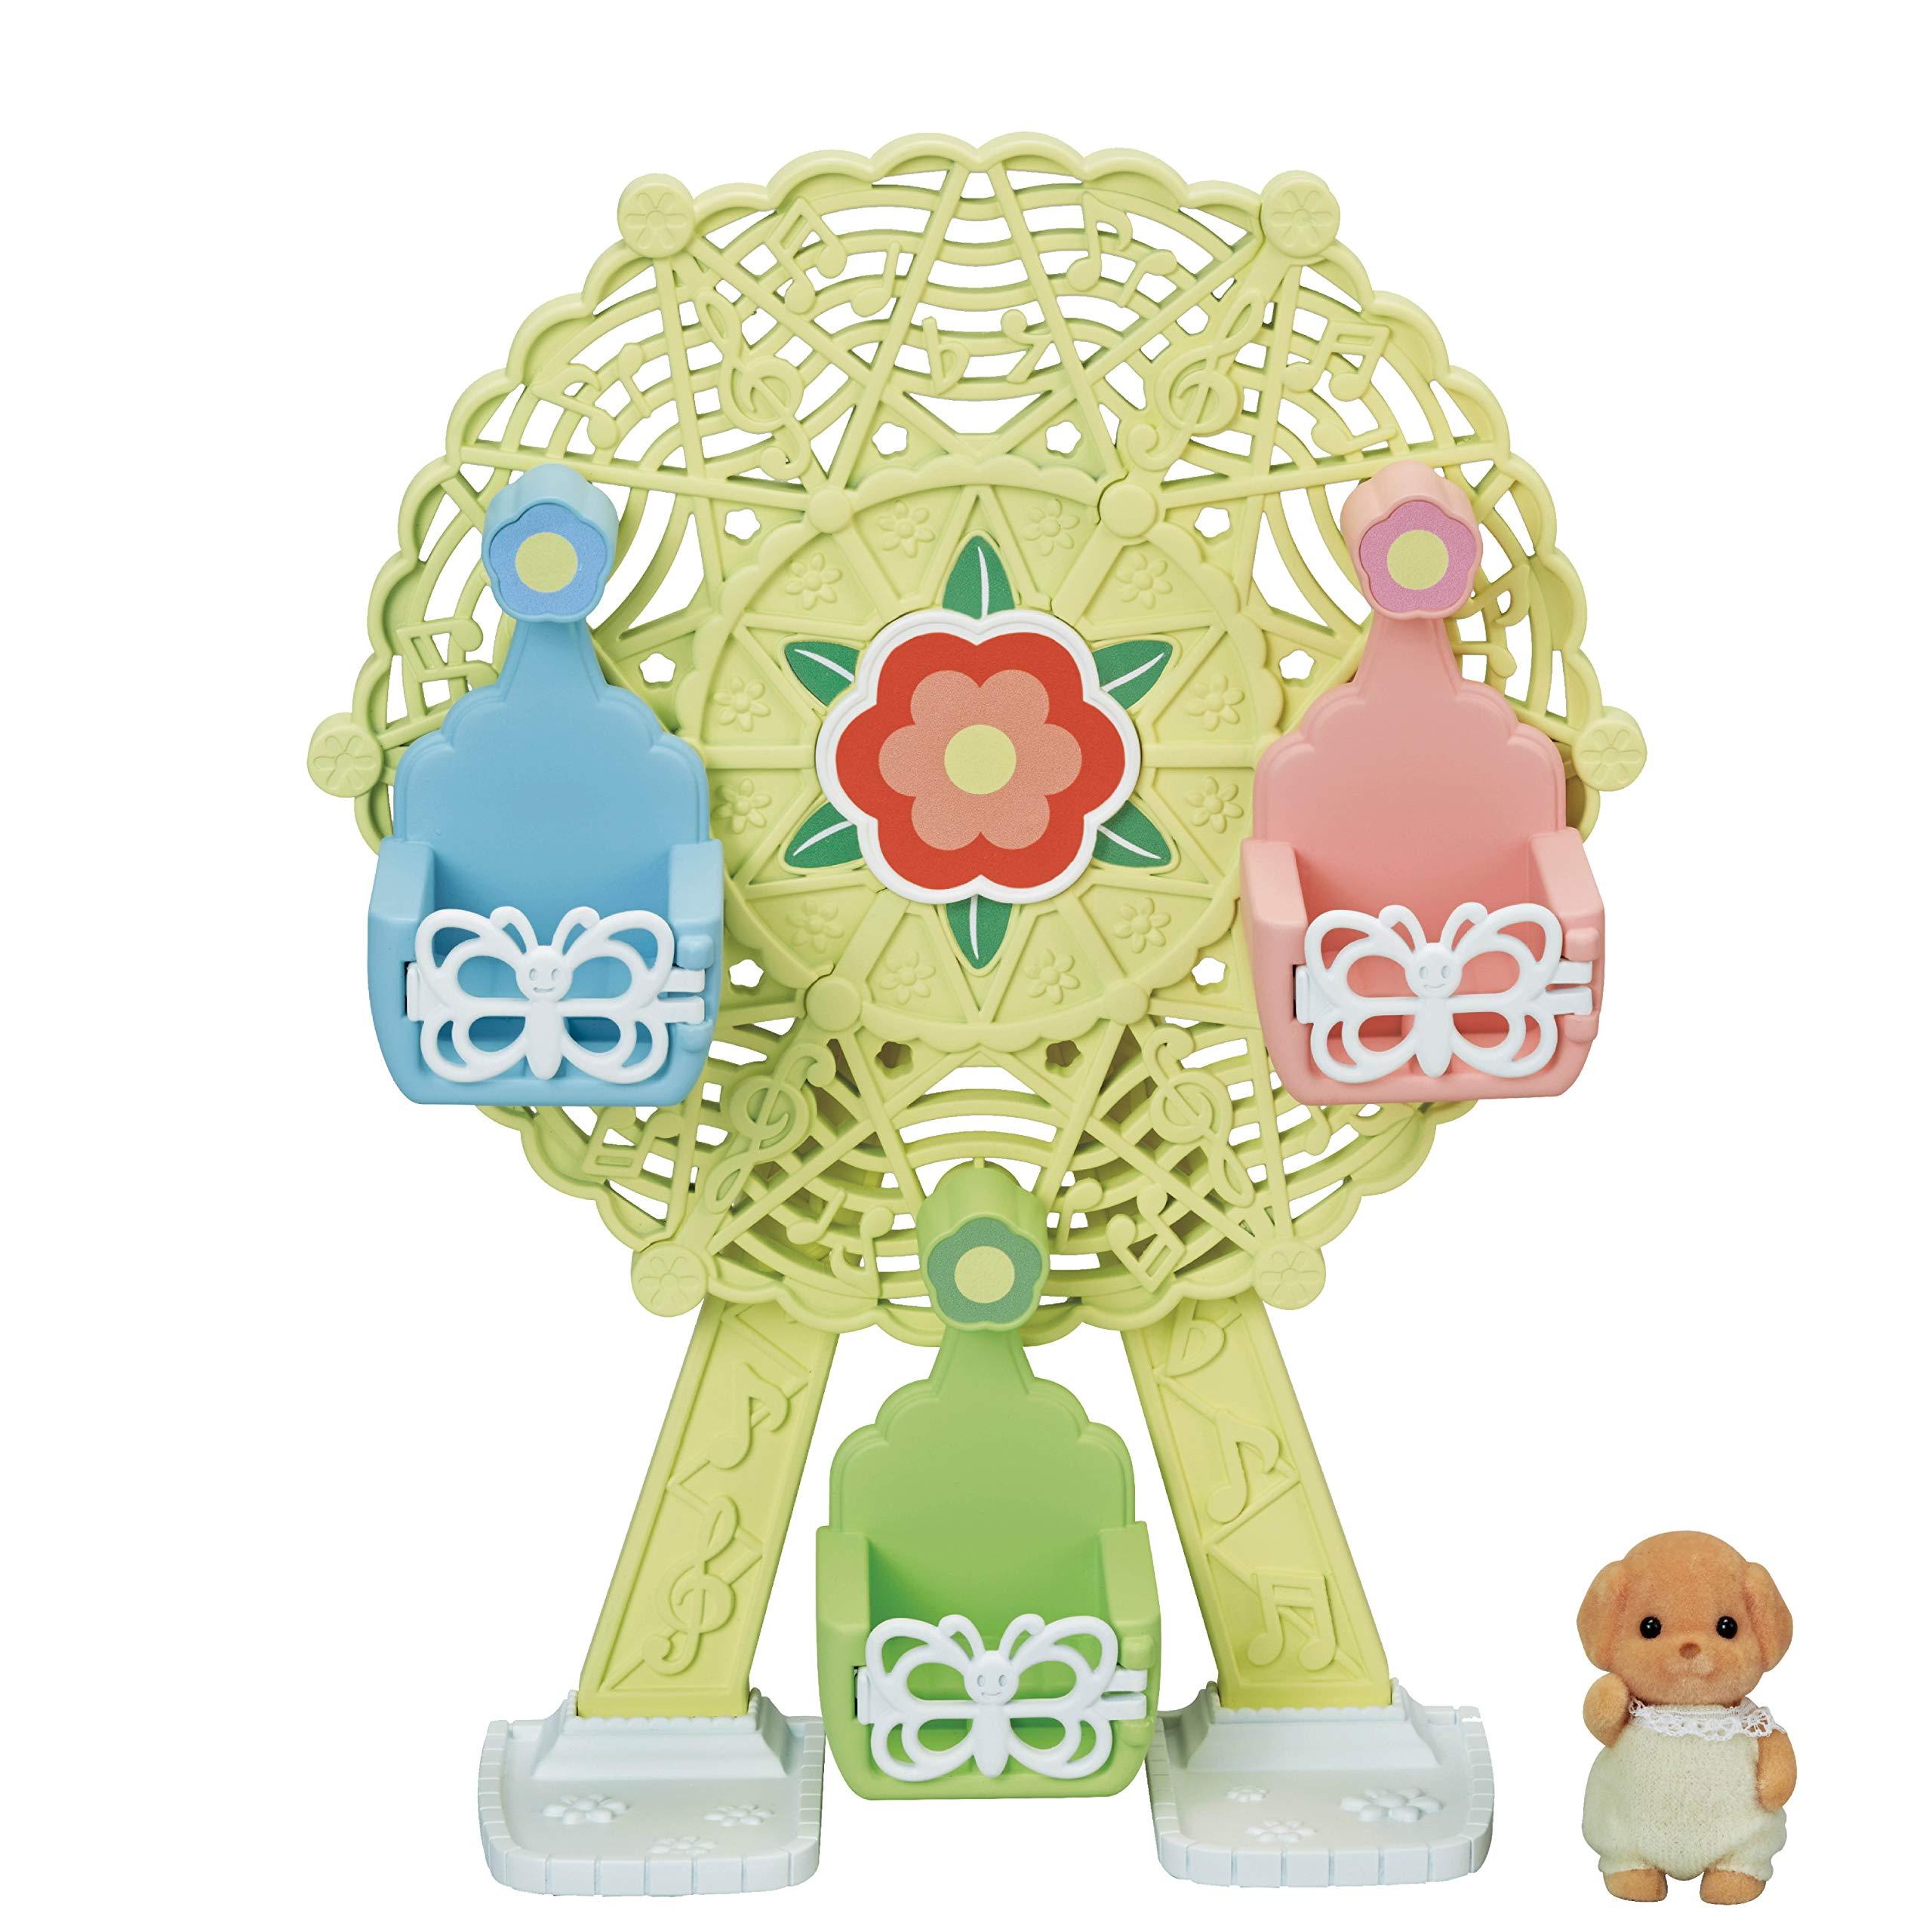 Calico Critters Baby Ferris Wheel, Dollhouse Playset with Toy Poodle Figure Included